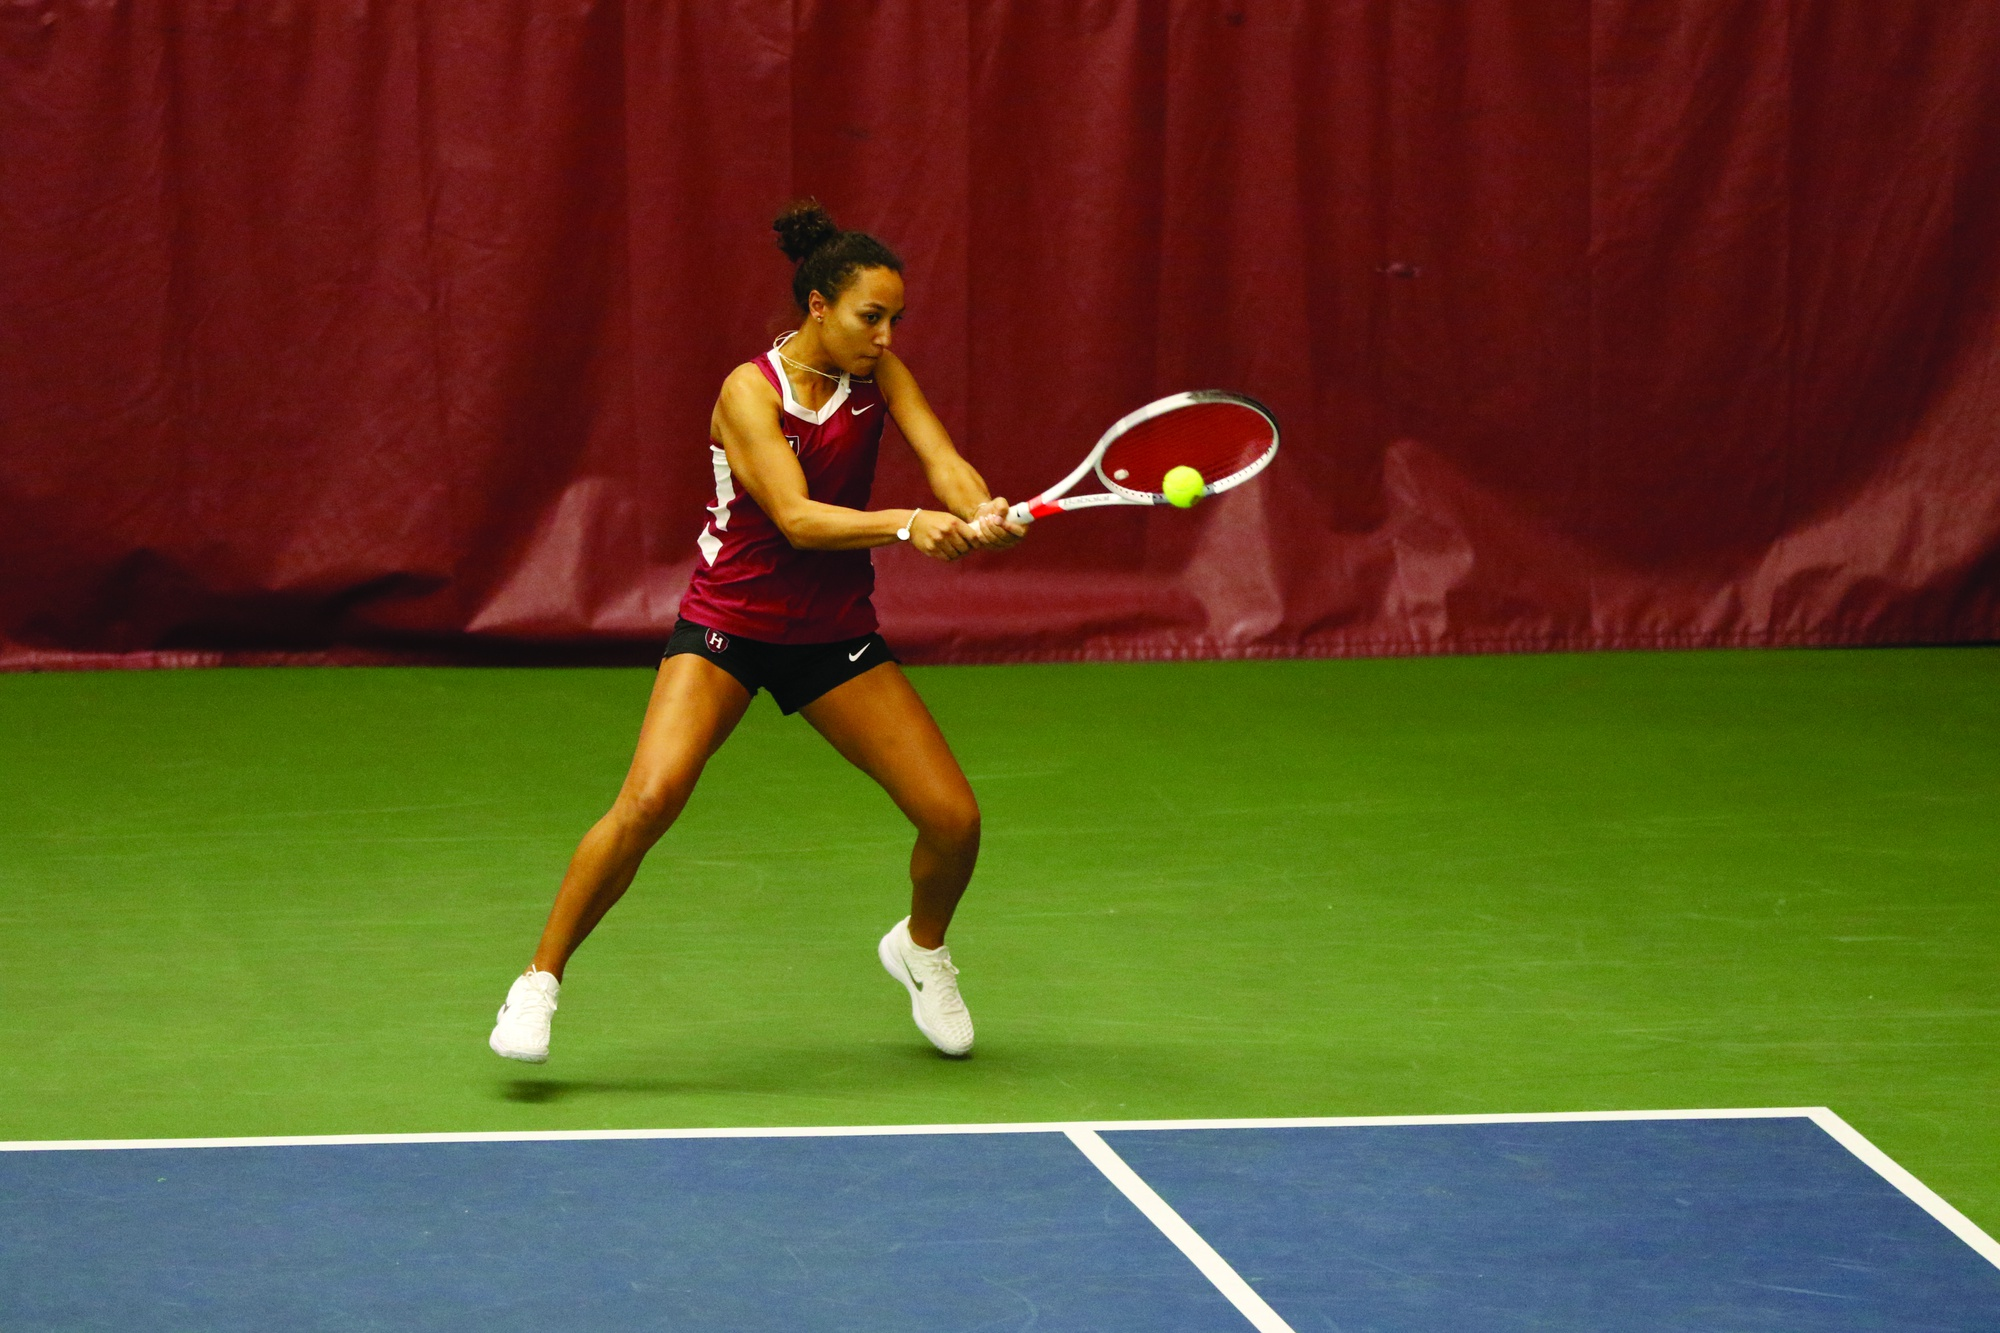 Senior Erica Oosterhout tracks a backhand at the baseline. Oosterhout is playing from the Crimson's No. 1 singles position this year. She was a unanimous All-Ivy First Team selection in singles play last season, a feat that she will aim to match in her final season playing on the Murr Center courts.